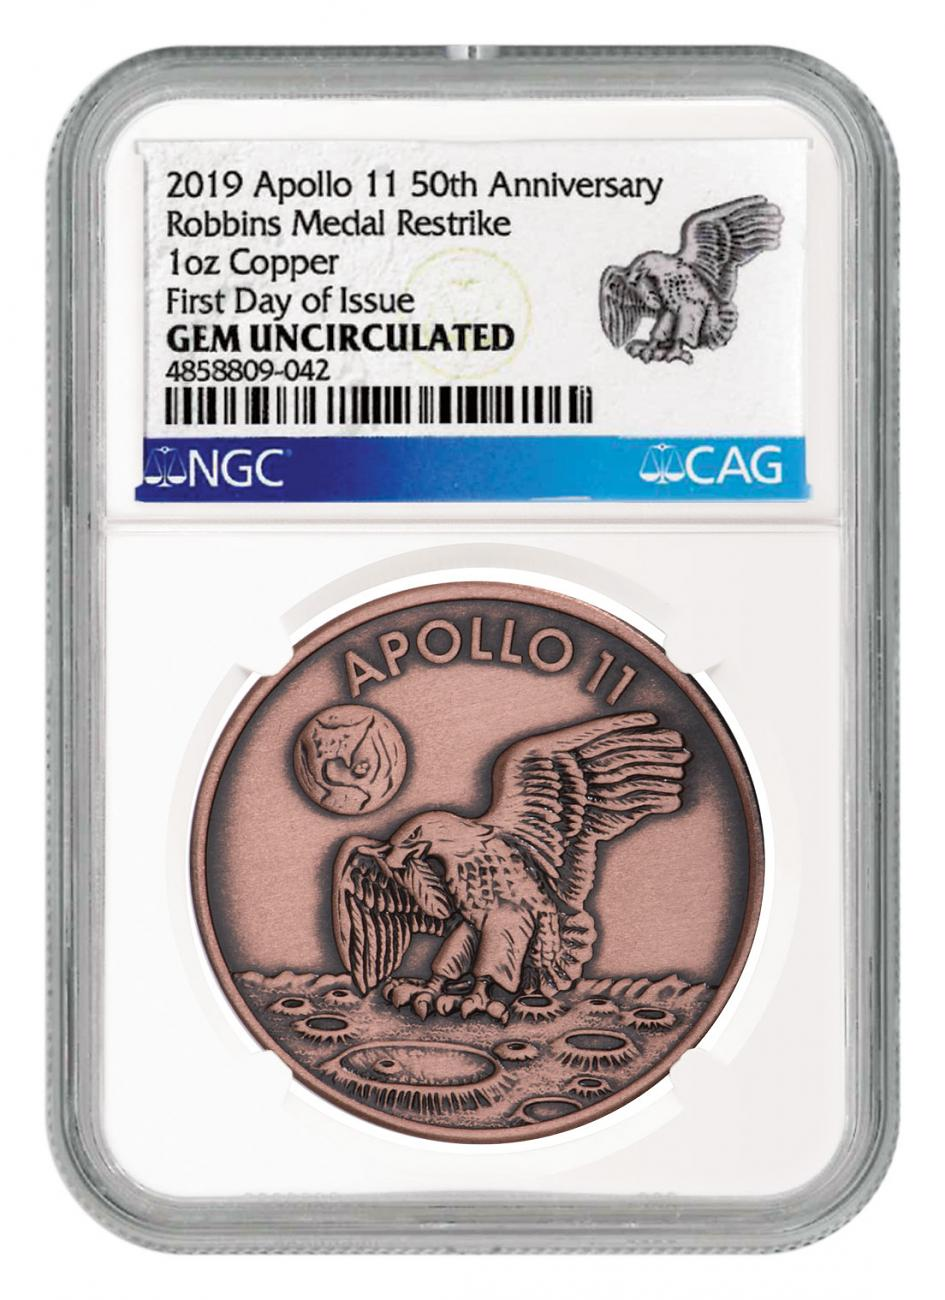 1969-2019 Apollo 11 50th Anniversary Robbins Medals 1 oz Copper Antiqued Medal NGC GEM Unc FDI